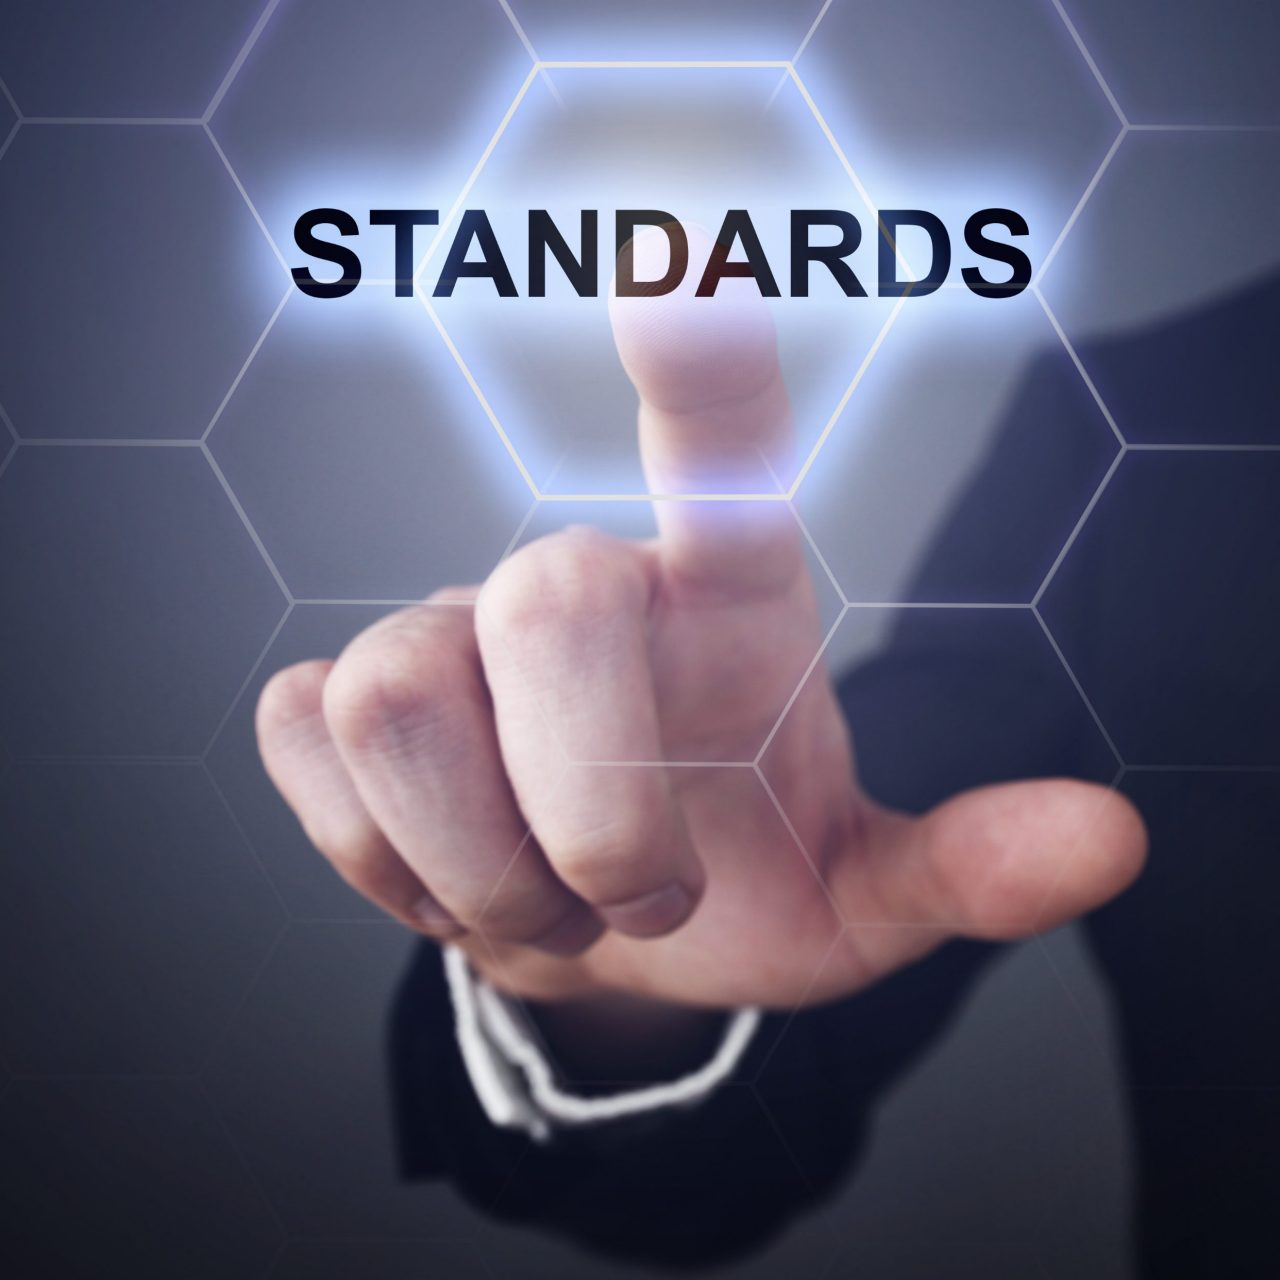 Petrochemical Standards